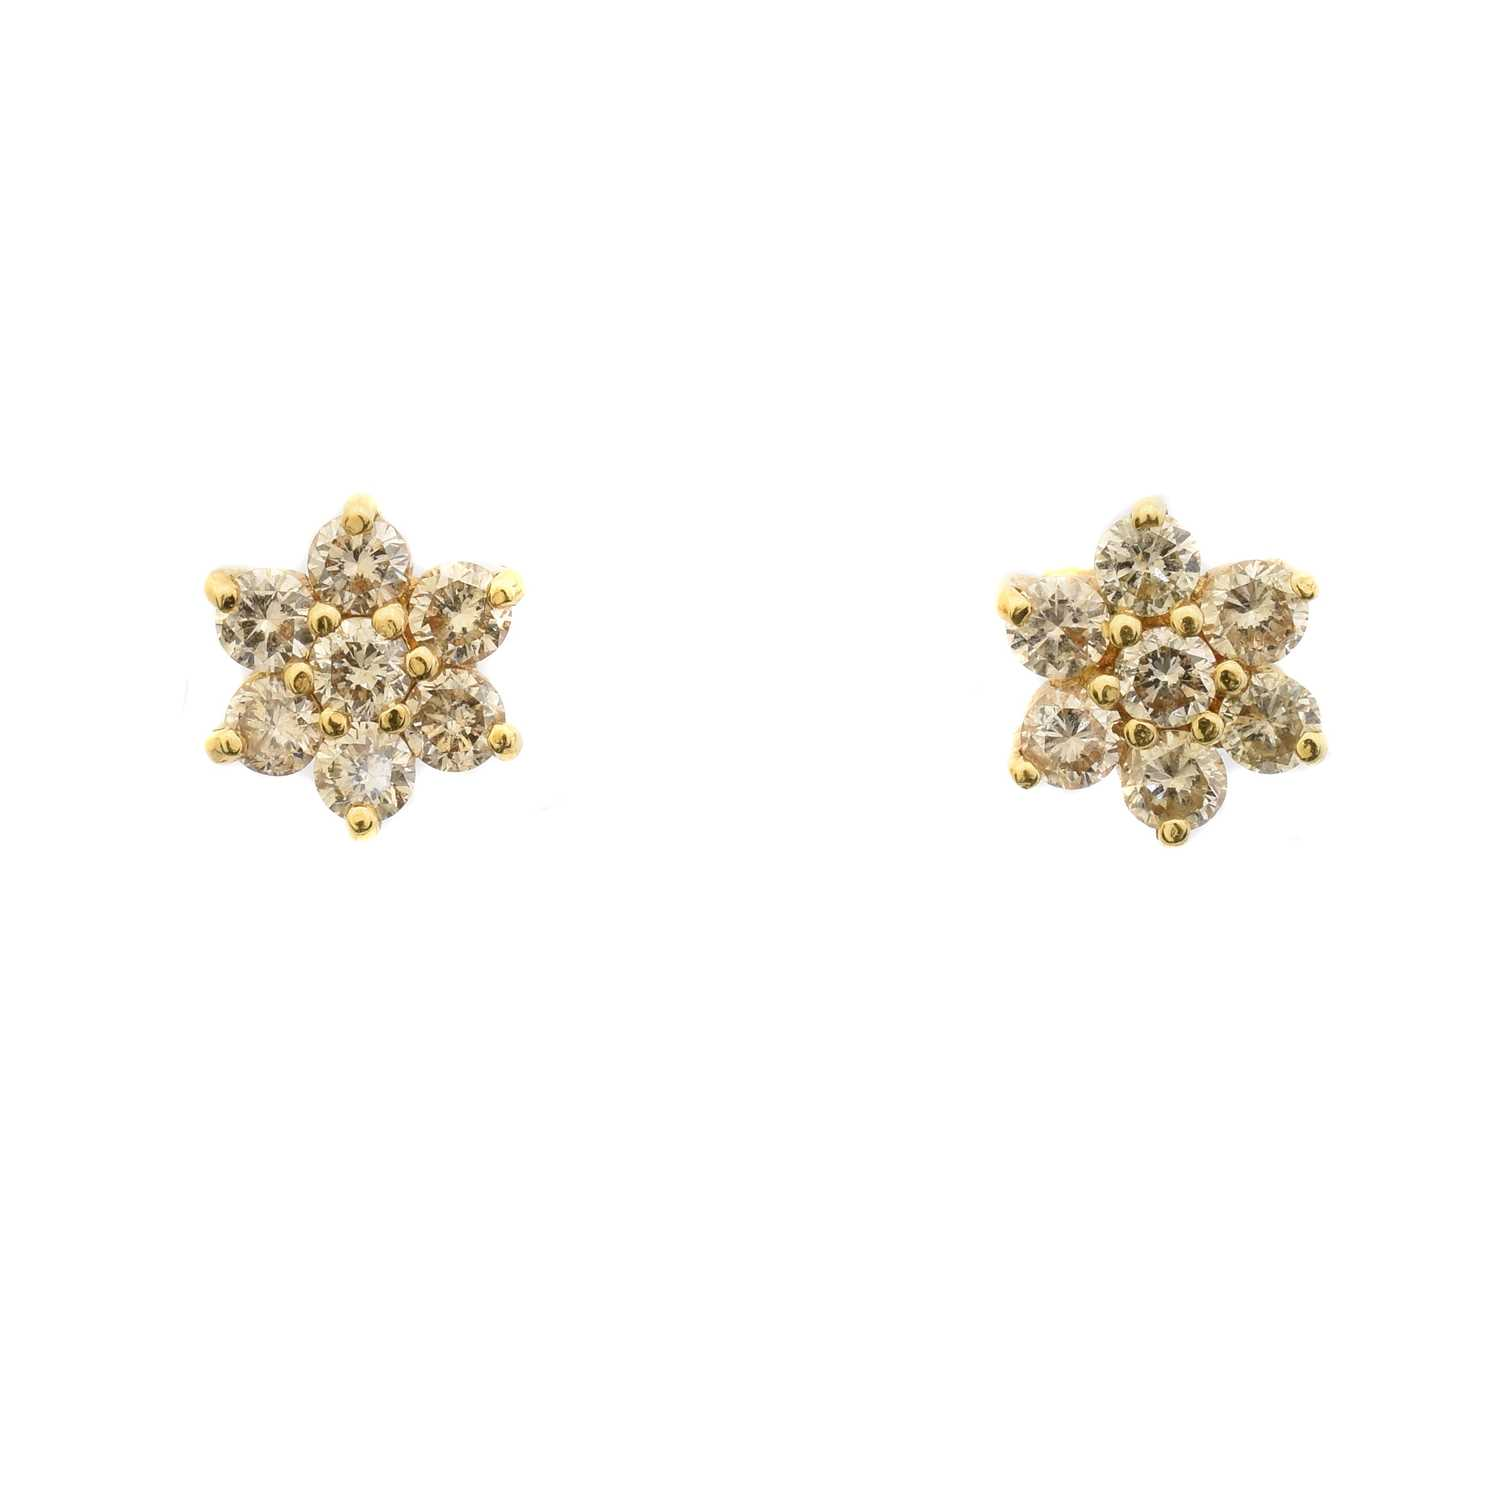 Lot 42 - A pair of 18ct gold brilliant cut diamond floral cluster earrings